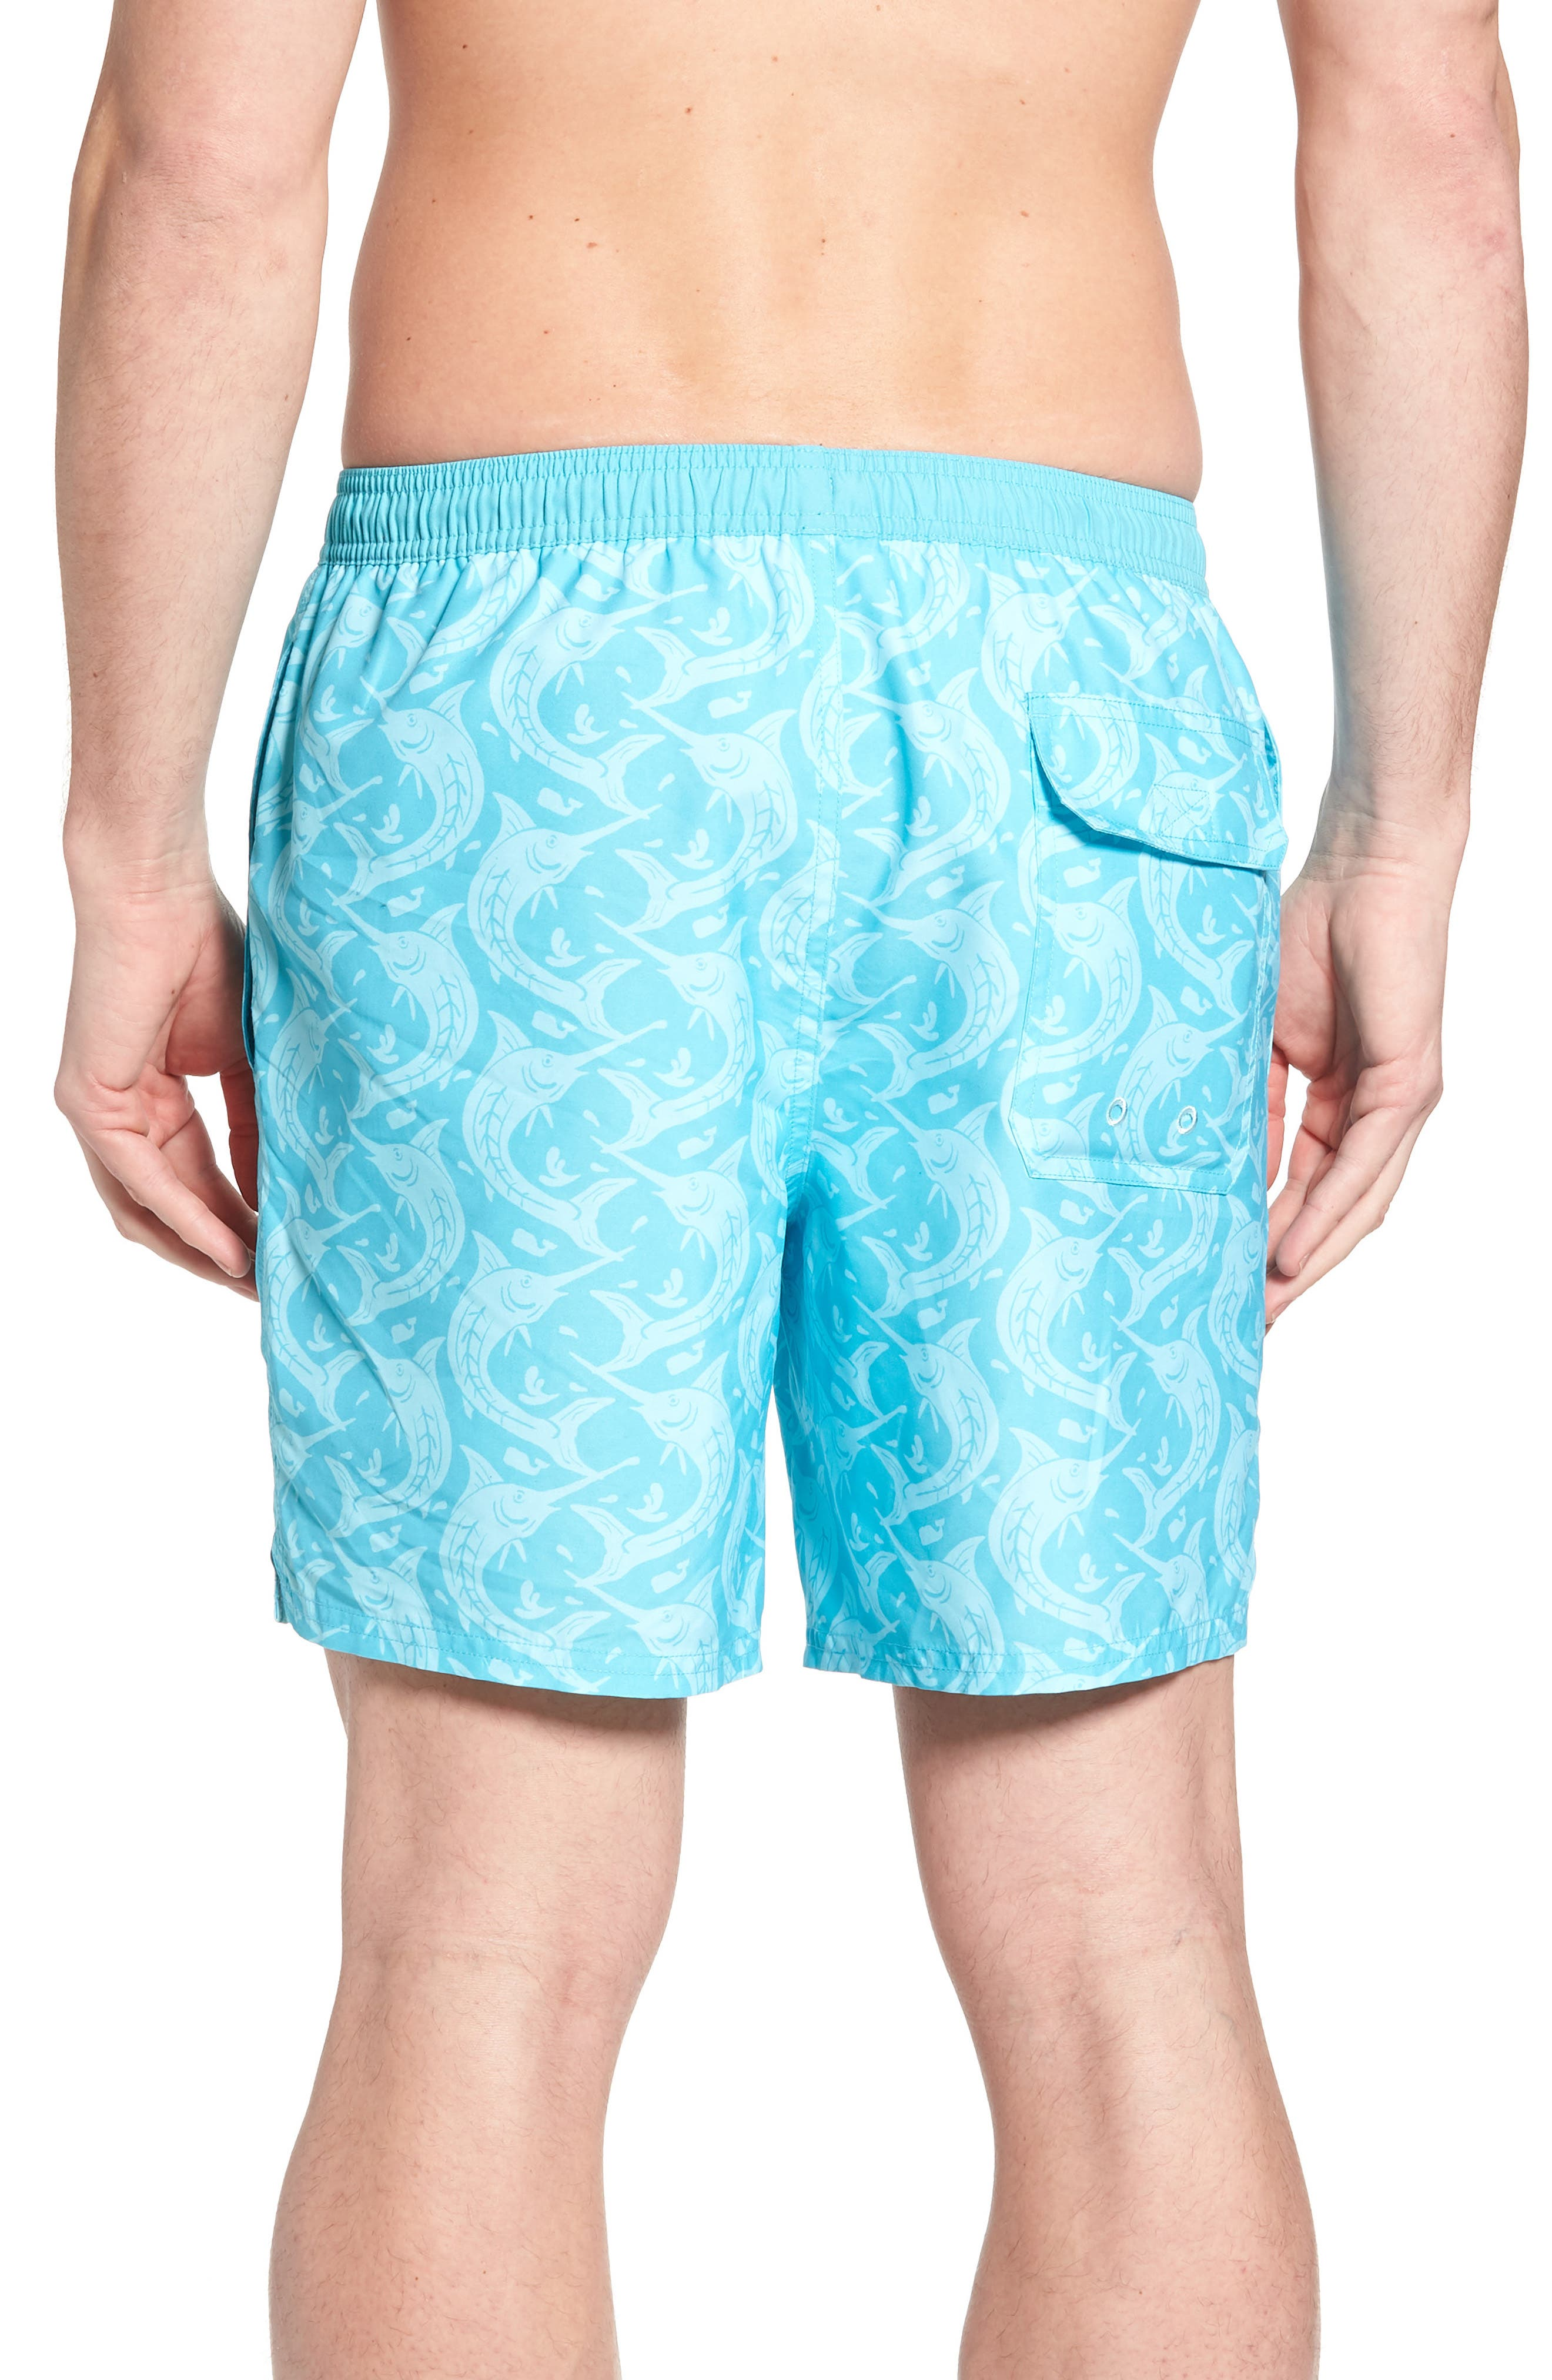 Marlin Out of Water Chappy Swim Trunks,                             Alternate thumbnail 2, color,                             Turquoise